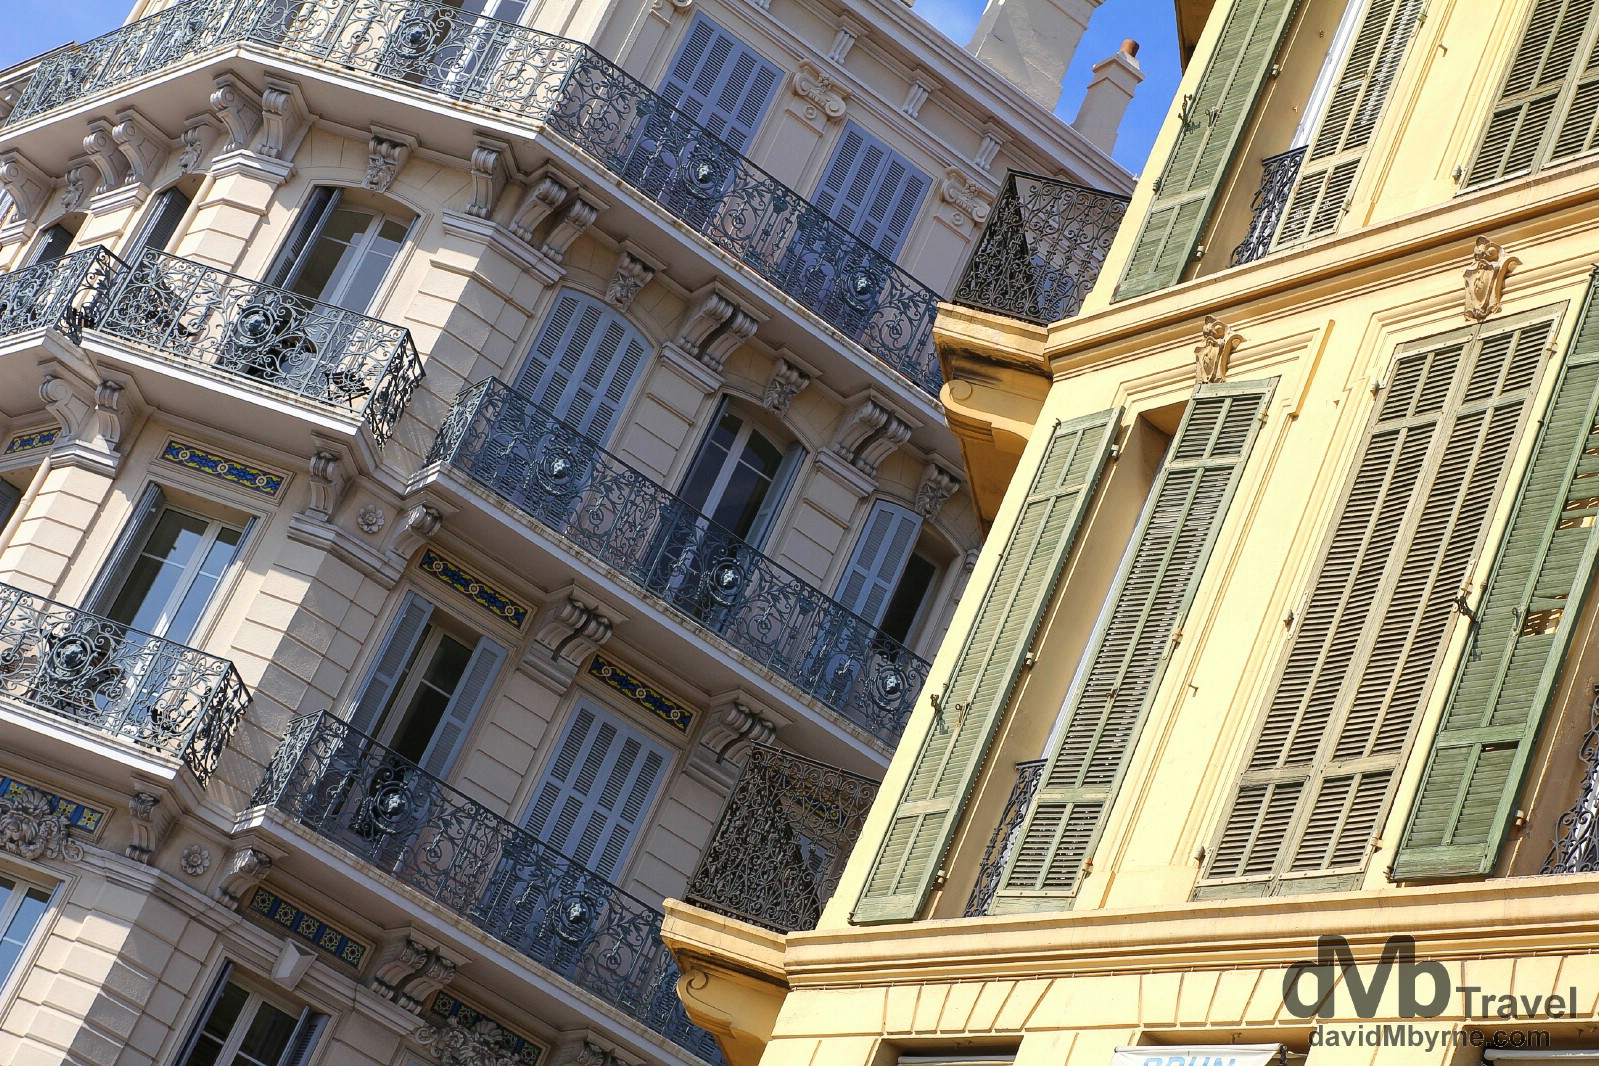 Buildings on Rue Felix Faure in Cannes, Côte d'Azur, France. March 15th, 2014.